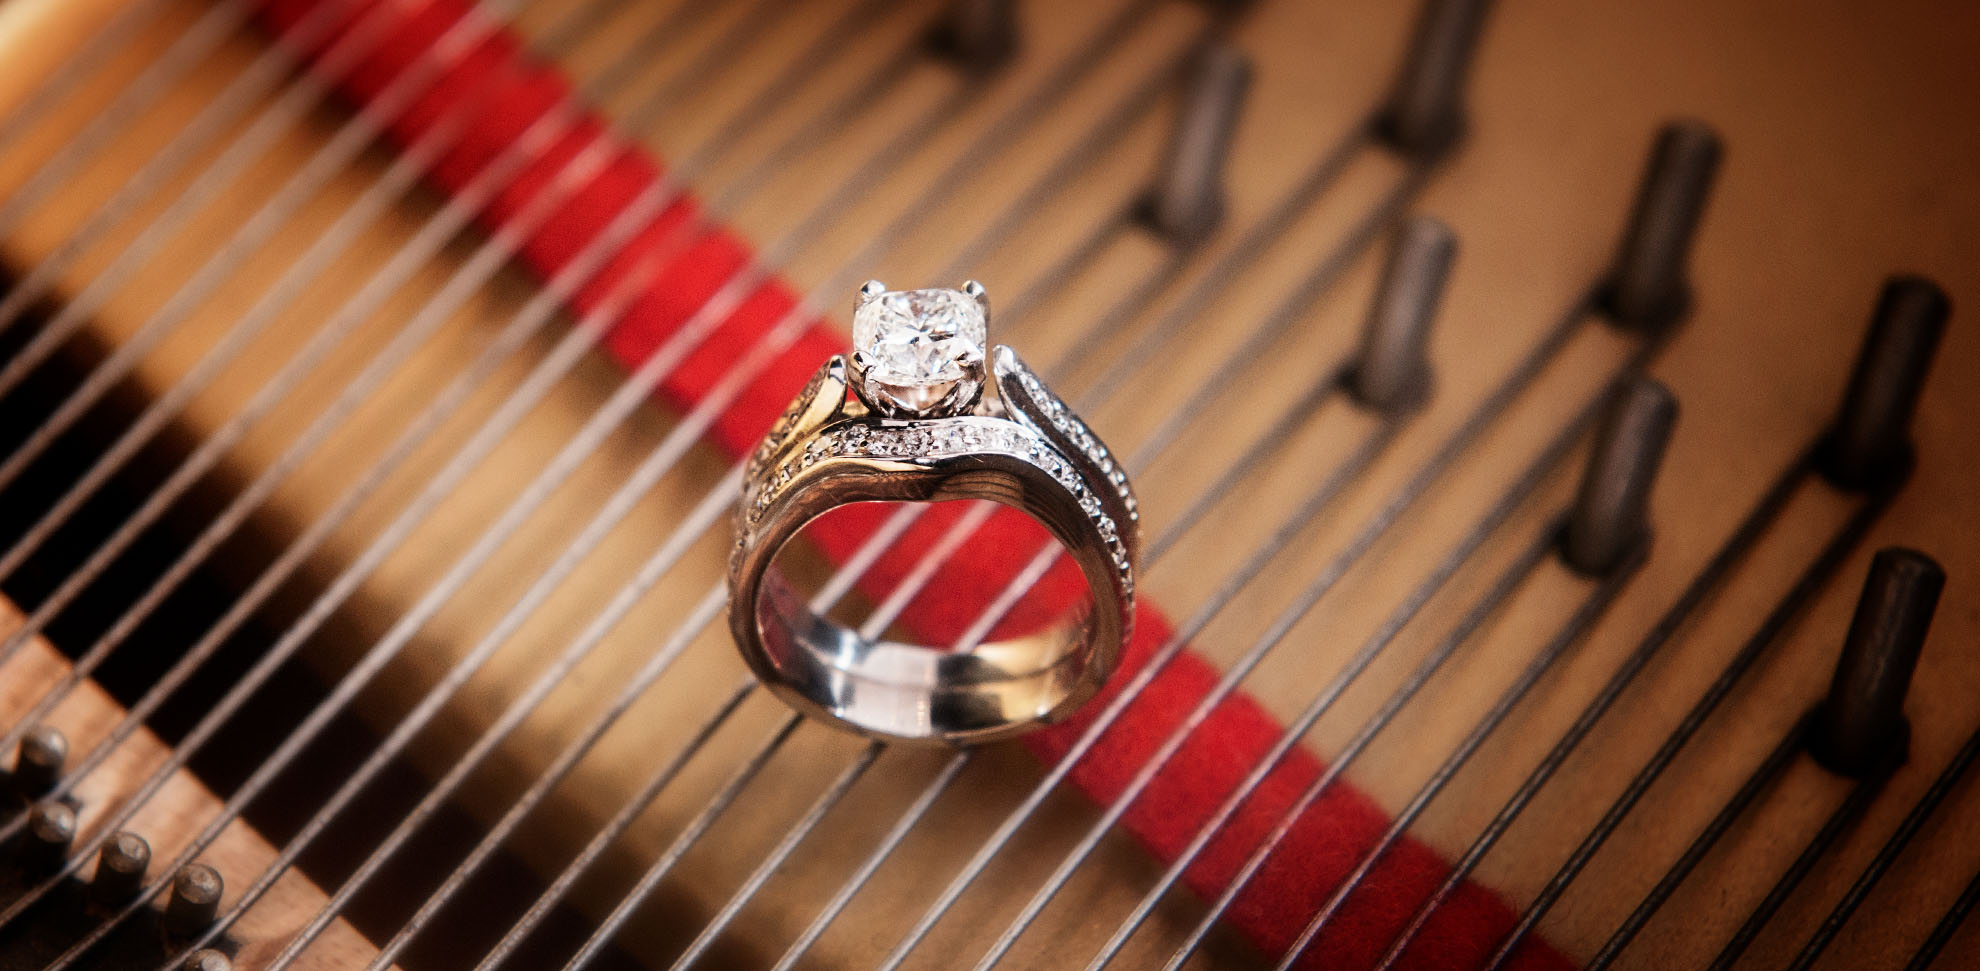 Ring on piano.jpg